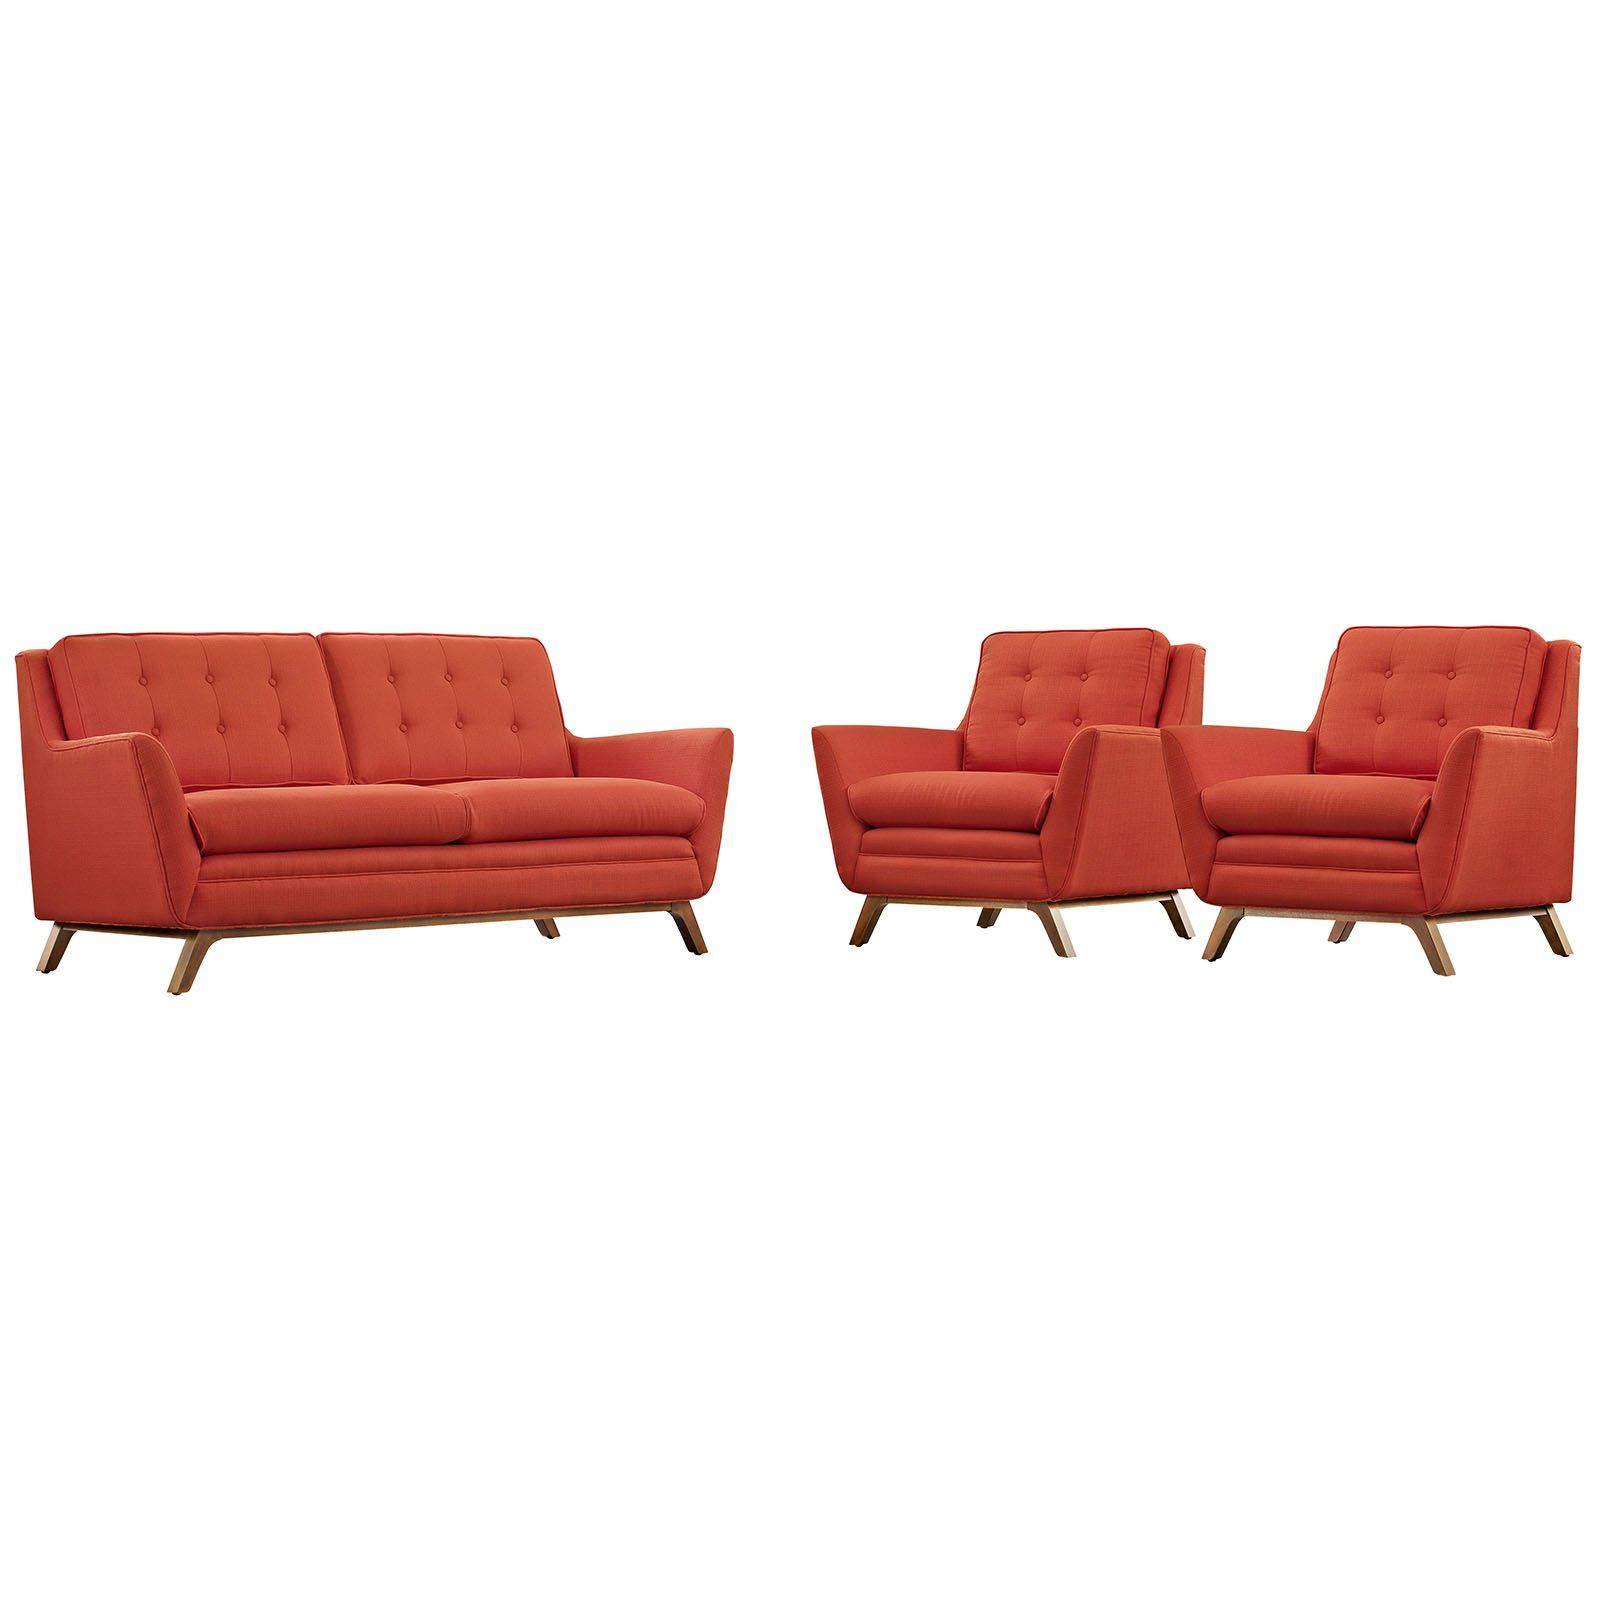 Beguile 3-Piece Living Room Set   Living room sets and Products